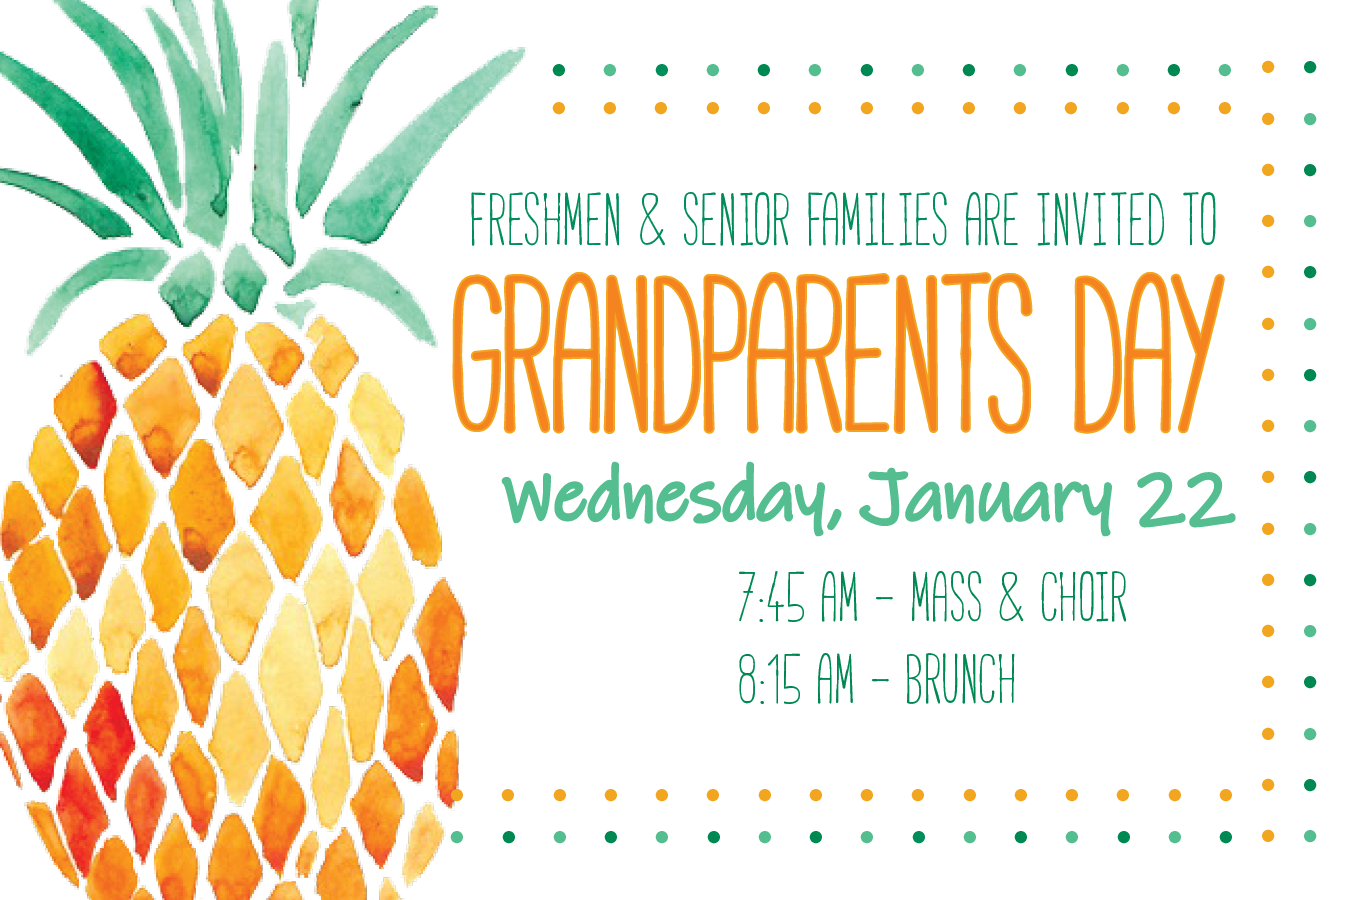 grandparents day invitation with watercolor pineapple